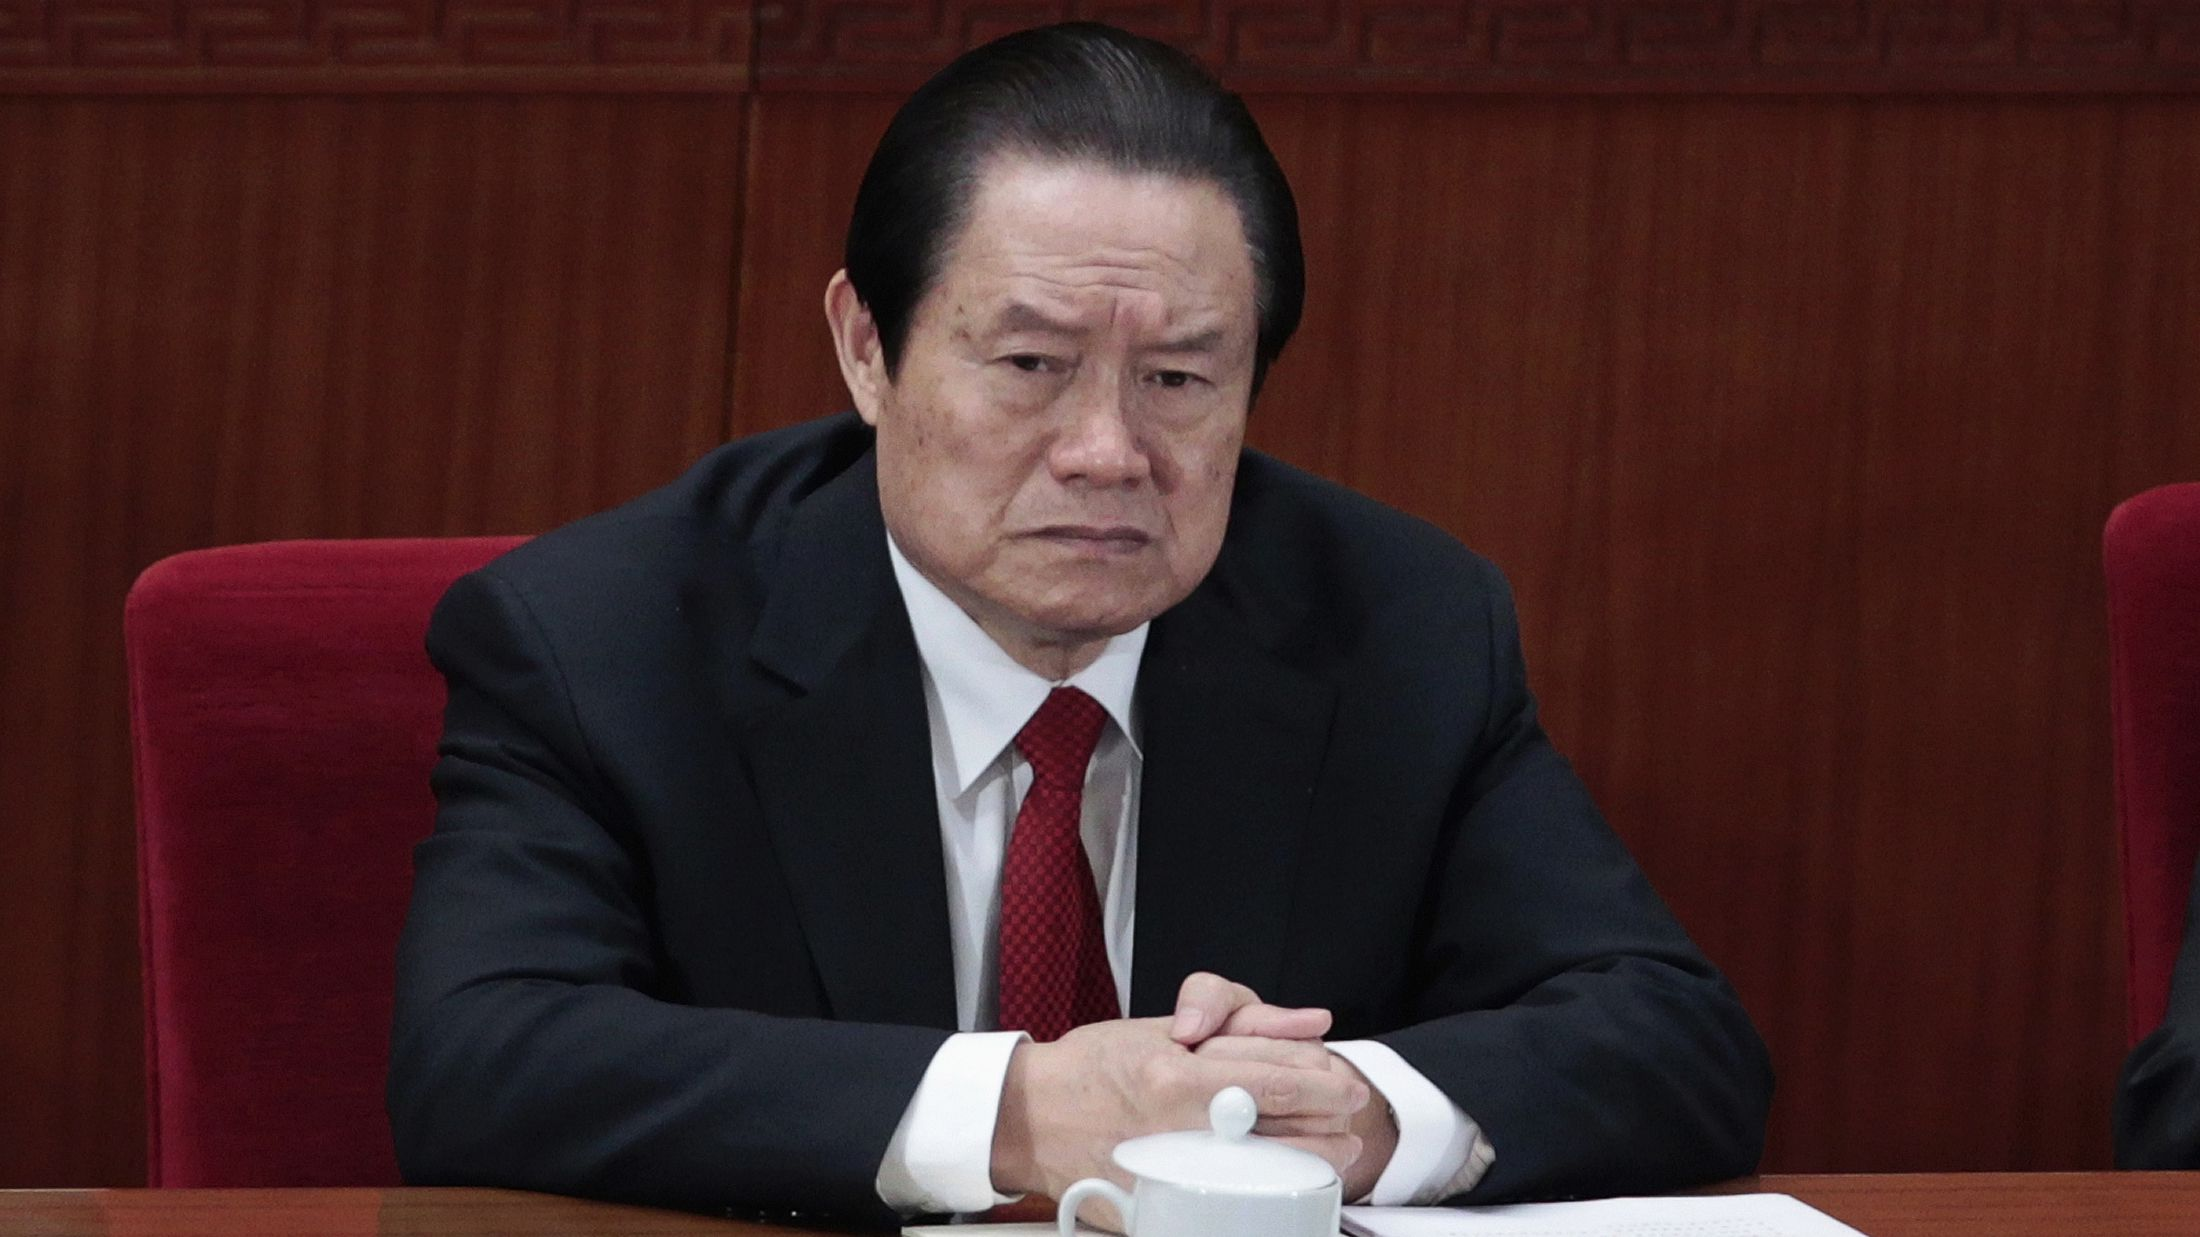 corruption detention purge xi jinping Former China's Politburo Standing Committee Member Zhou Yongkang attends the closing ceremony of the National People's Congress (NPC) at the Great Hall of the People in Beijing March 14, 2012. China's senior leadership has agreed to open a corruption investigation into Zhou, one of China's most powerful politicians in the past decade, stepping up its anti-graft campaign, the South China Morning Post reported on August 30, 2013. Picture taken March 14, 2012. REUTERS/Jason Lee